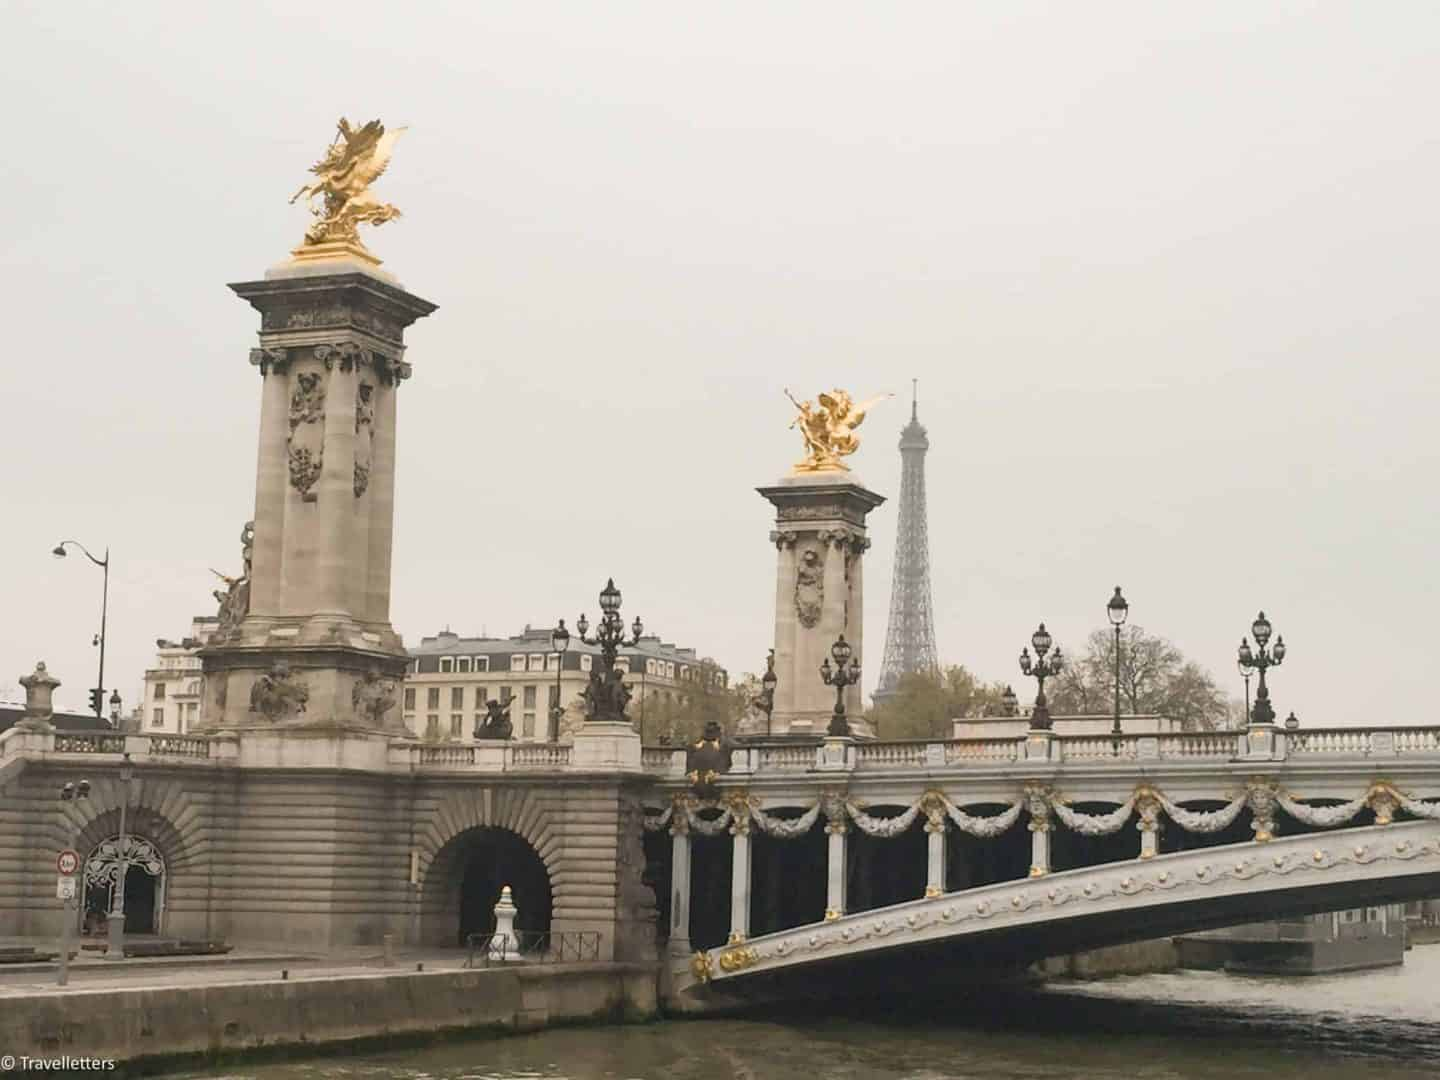 best time to visit paris, best time to travel to Paris, best time of year to visit paris, attractions in Paris, Pont Alexandre III, best time to visit paris france, things to do in Paris, paris 3 days itinerary